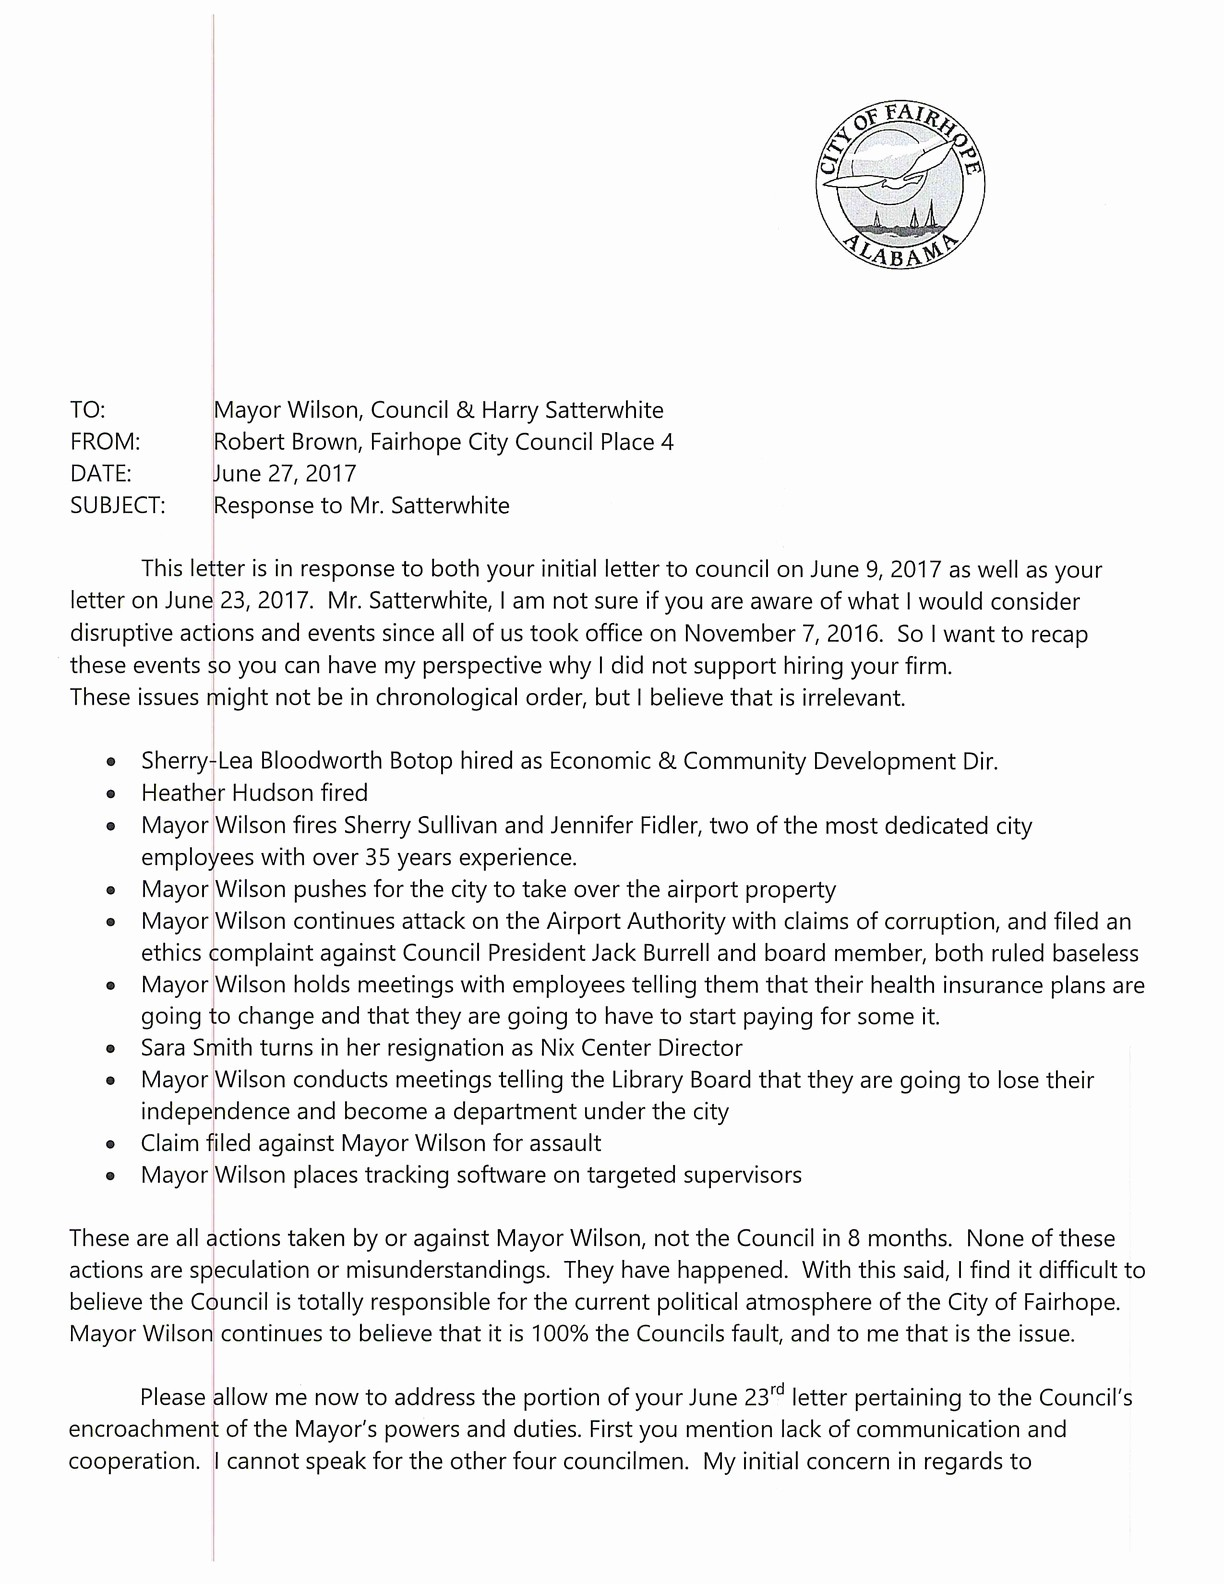 Letter to City Council Template Luxury Fairhope Councilman Lays Out issues Between Council Mayor